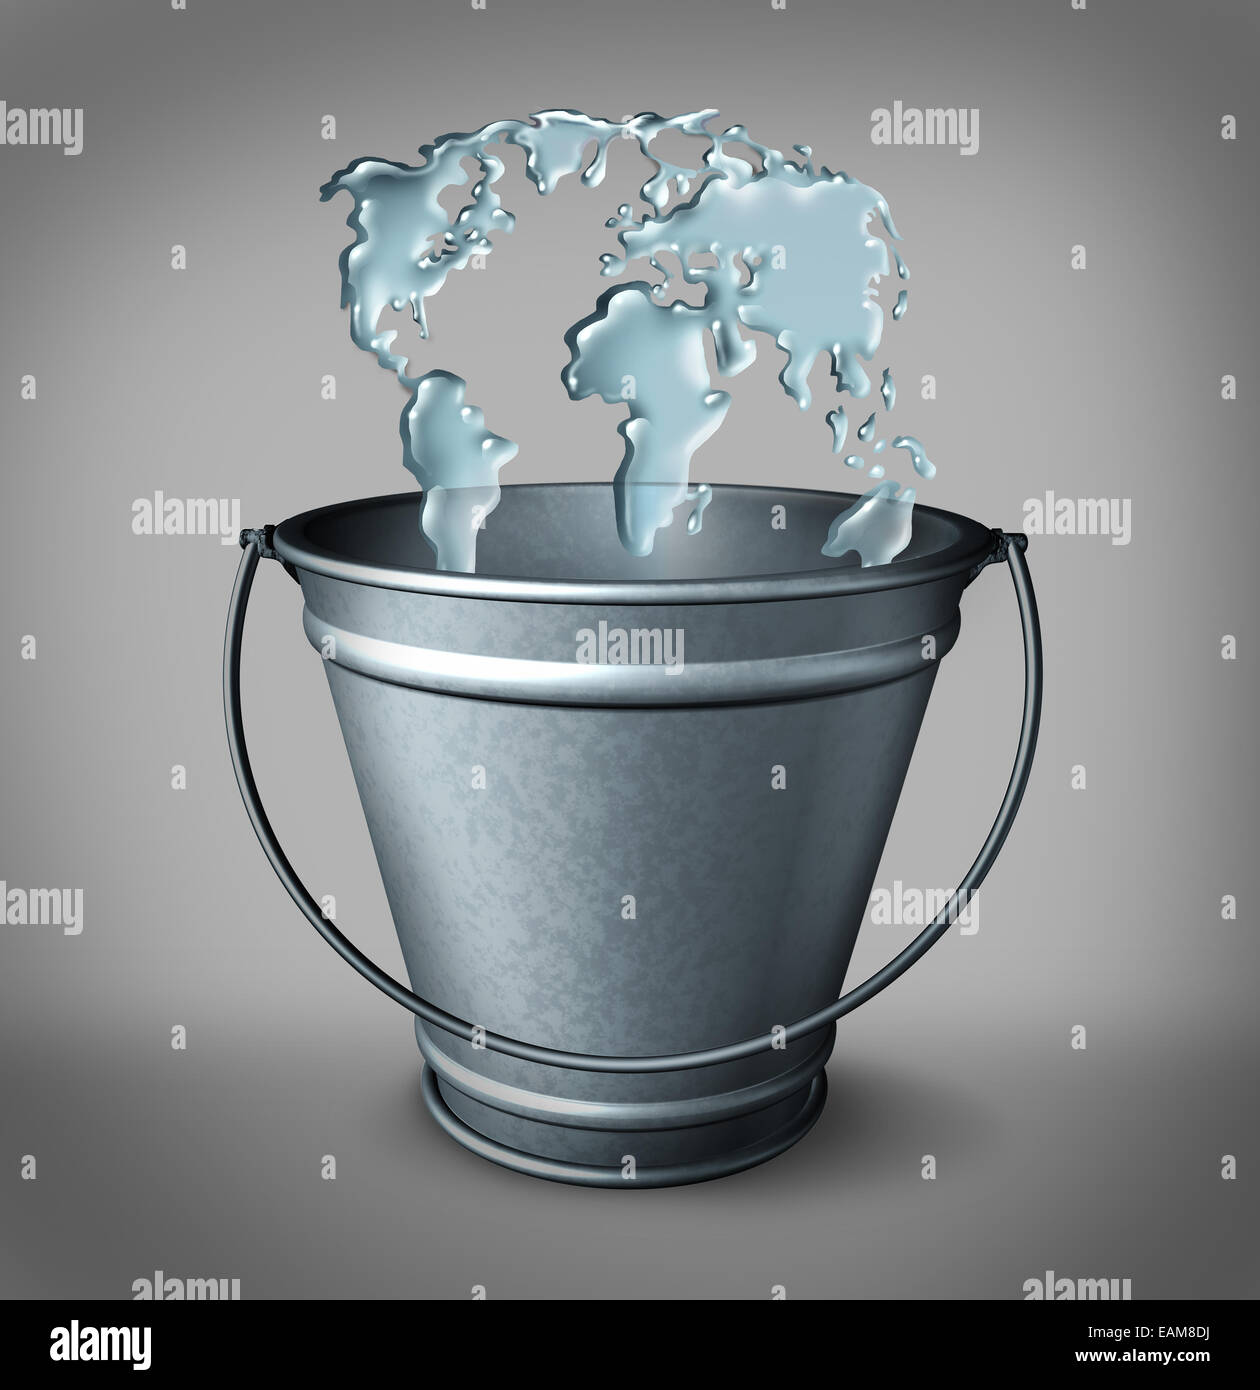 a drop in the bucket A drop in the bucket by felix richter, may 25, 2018 apple apple was awarded $539 million in damages from samsung for patent infringement by a jury in the us district court in san jose on thursday.